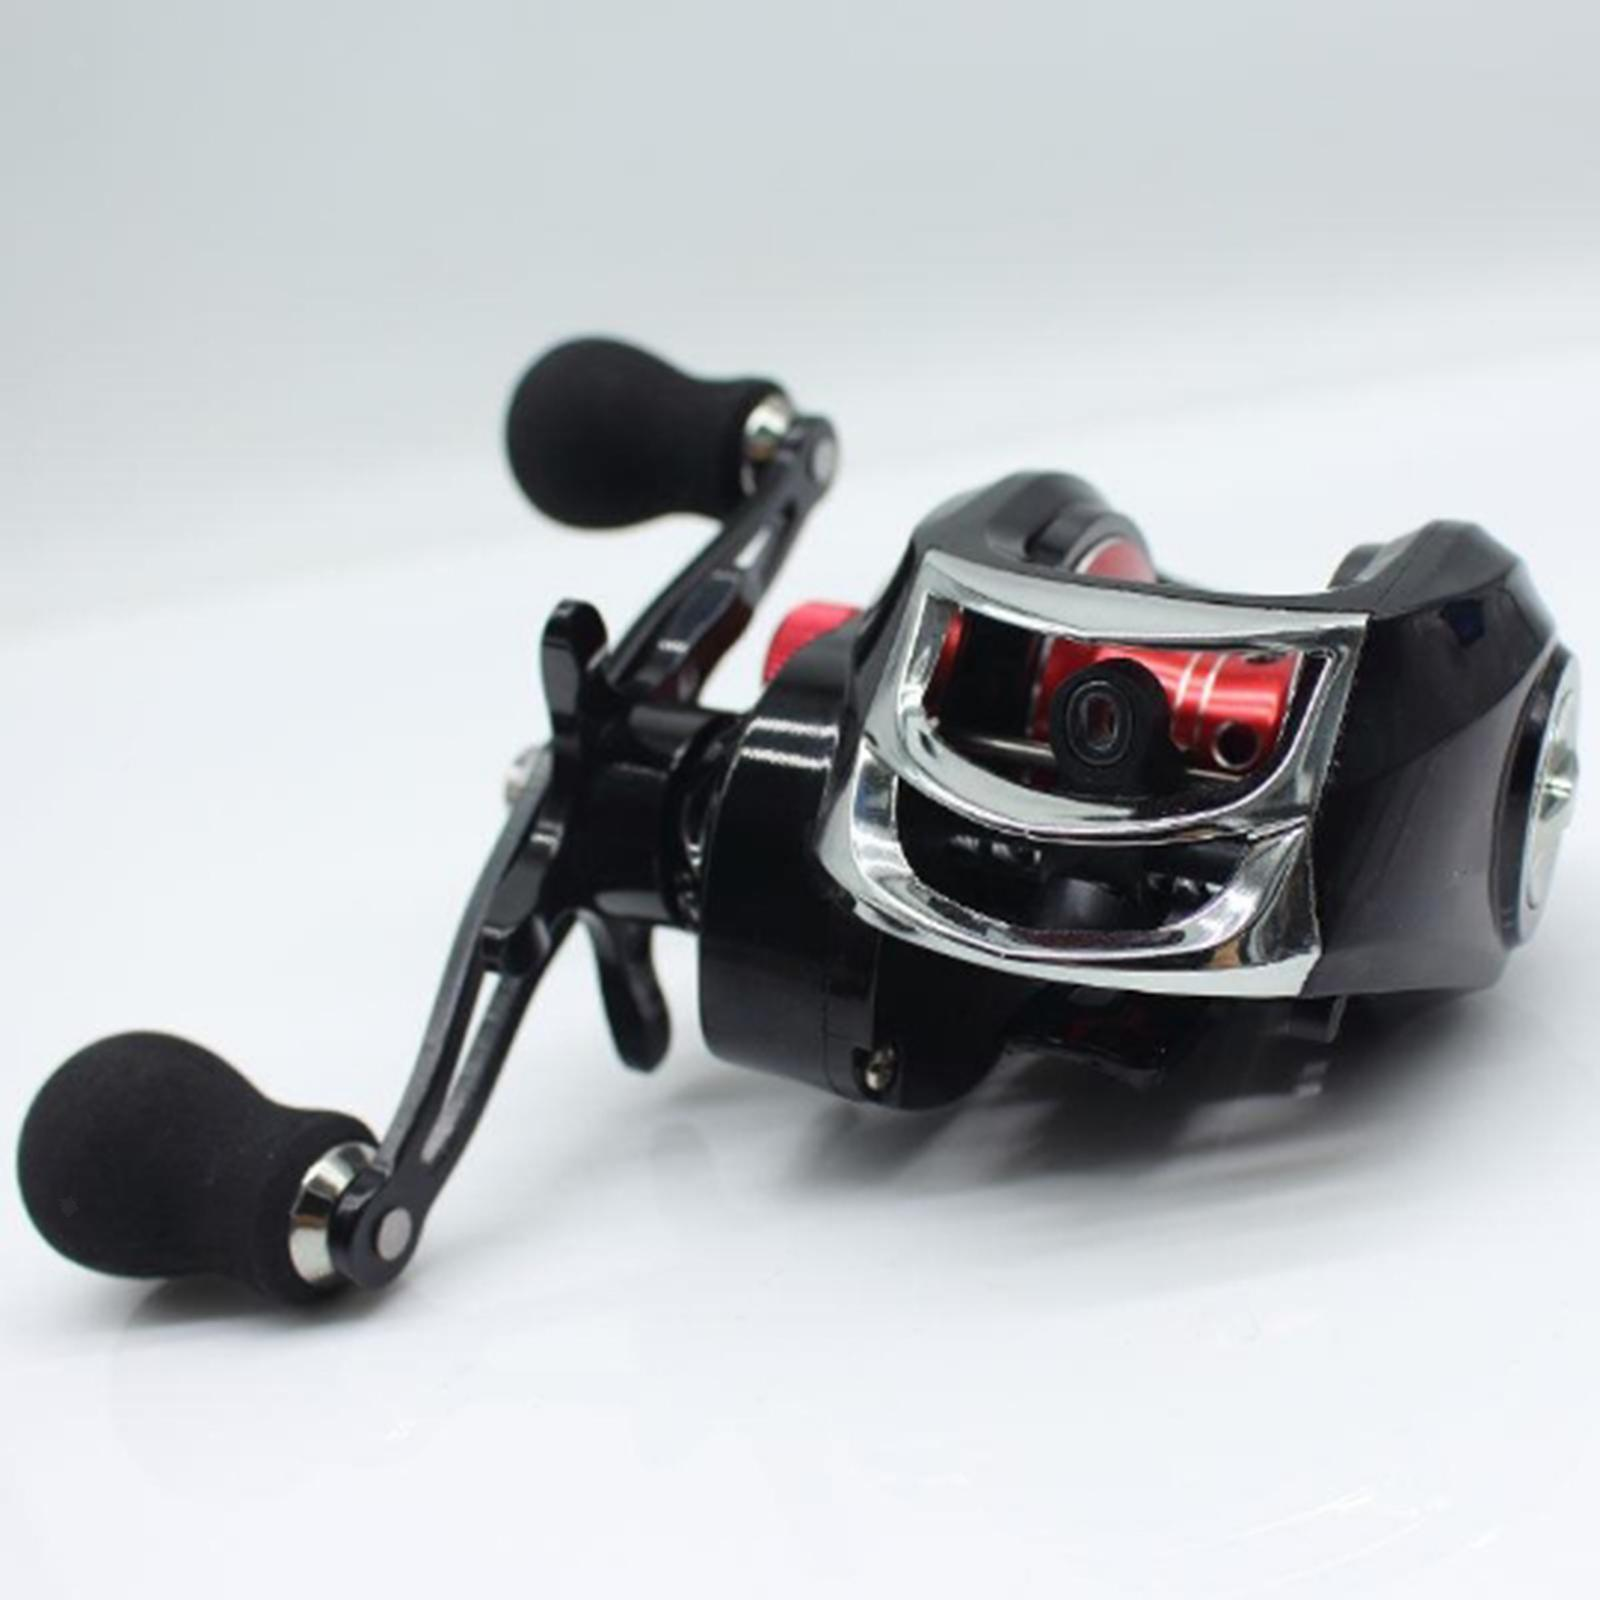 Full-Metal-Baitcaster-Low-Profile-Baitcasting-Fishing-Reel-Long-Casting-Reel thumbnail 8